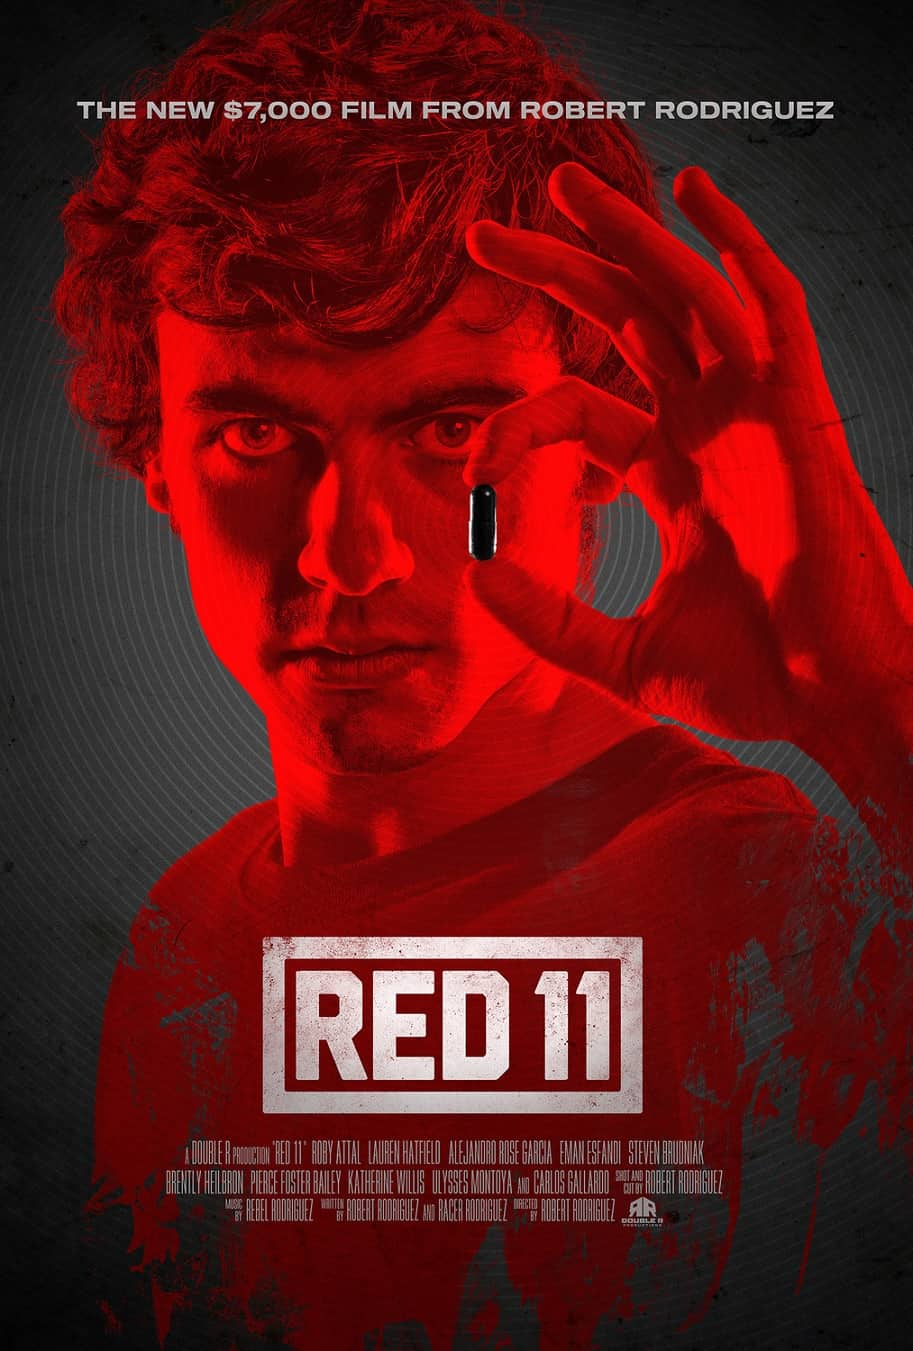 Red 11 poster - Robert Rodriguez's RED 11 & FILM SCHOOL Docu-Series Hits Tubi This Summer